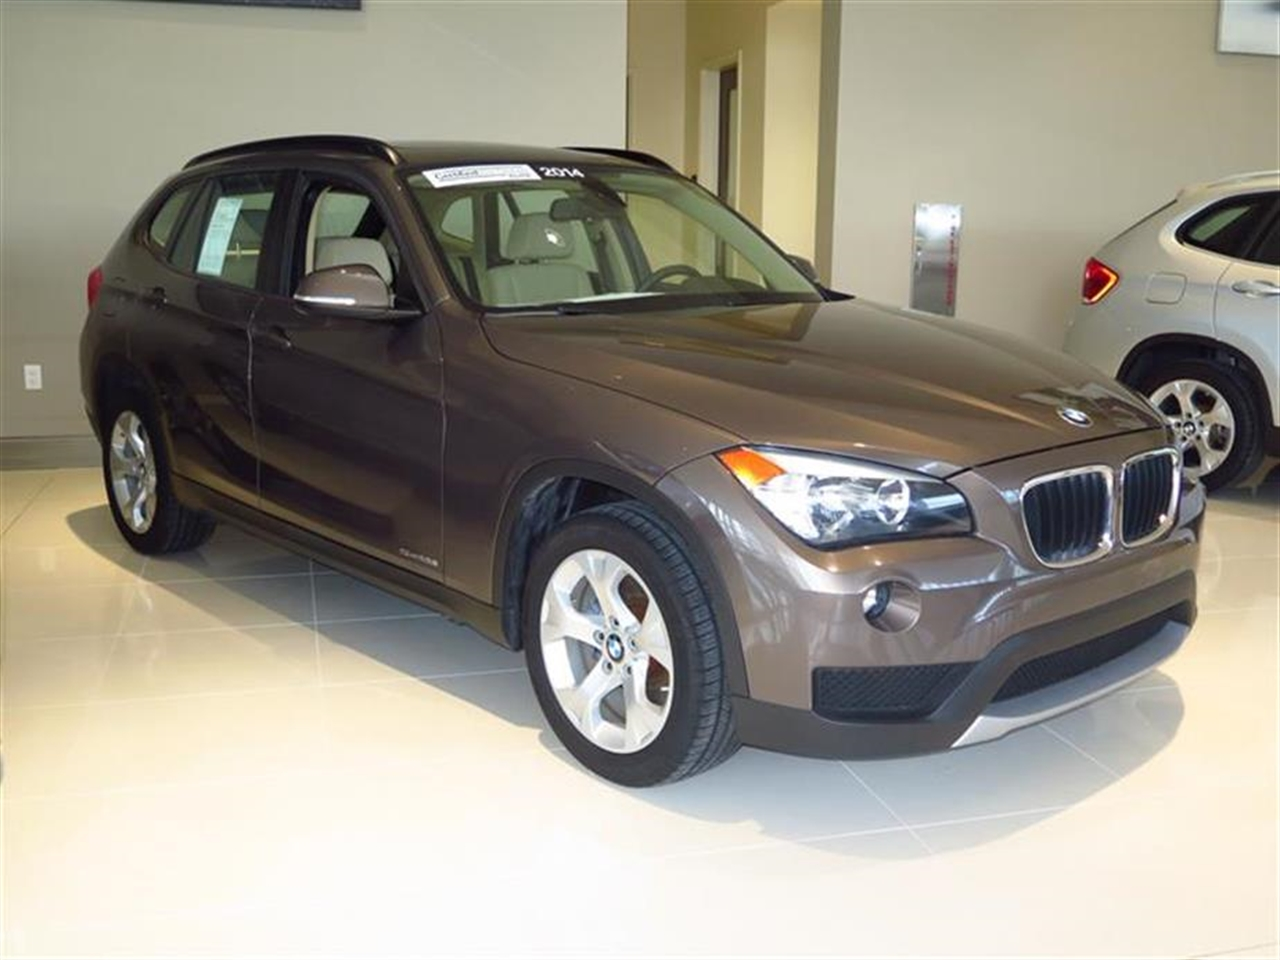 2014 BMW X1 RWD 4dr sDrive28i 9958 miles 2 Seatback Storage Pockets 3 12V DC Power Outlets LEATH